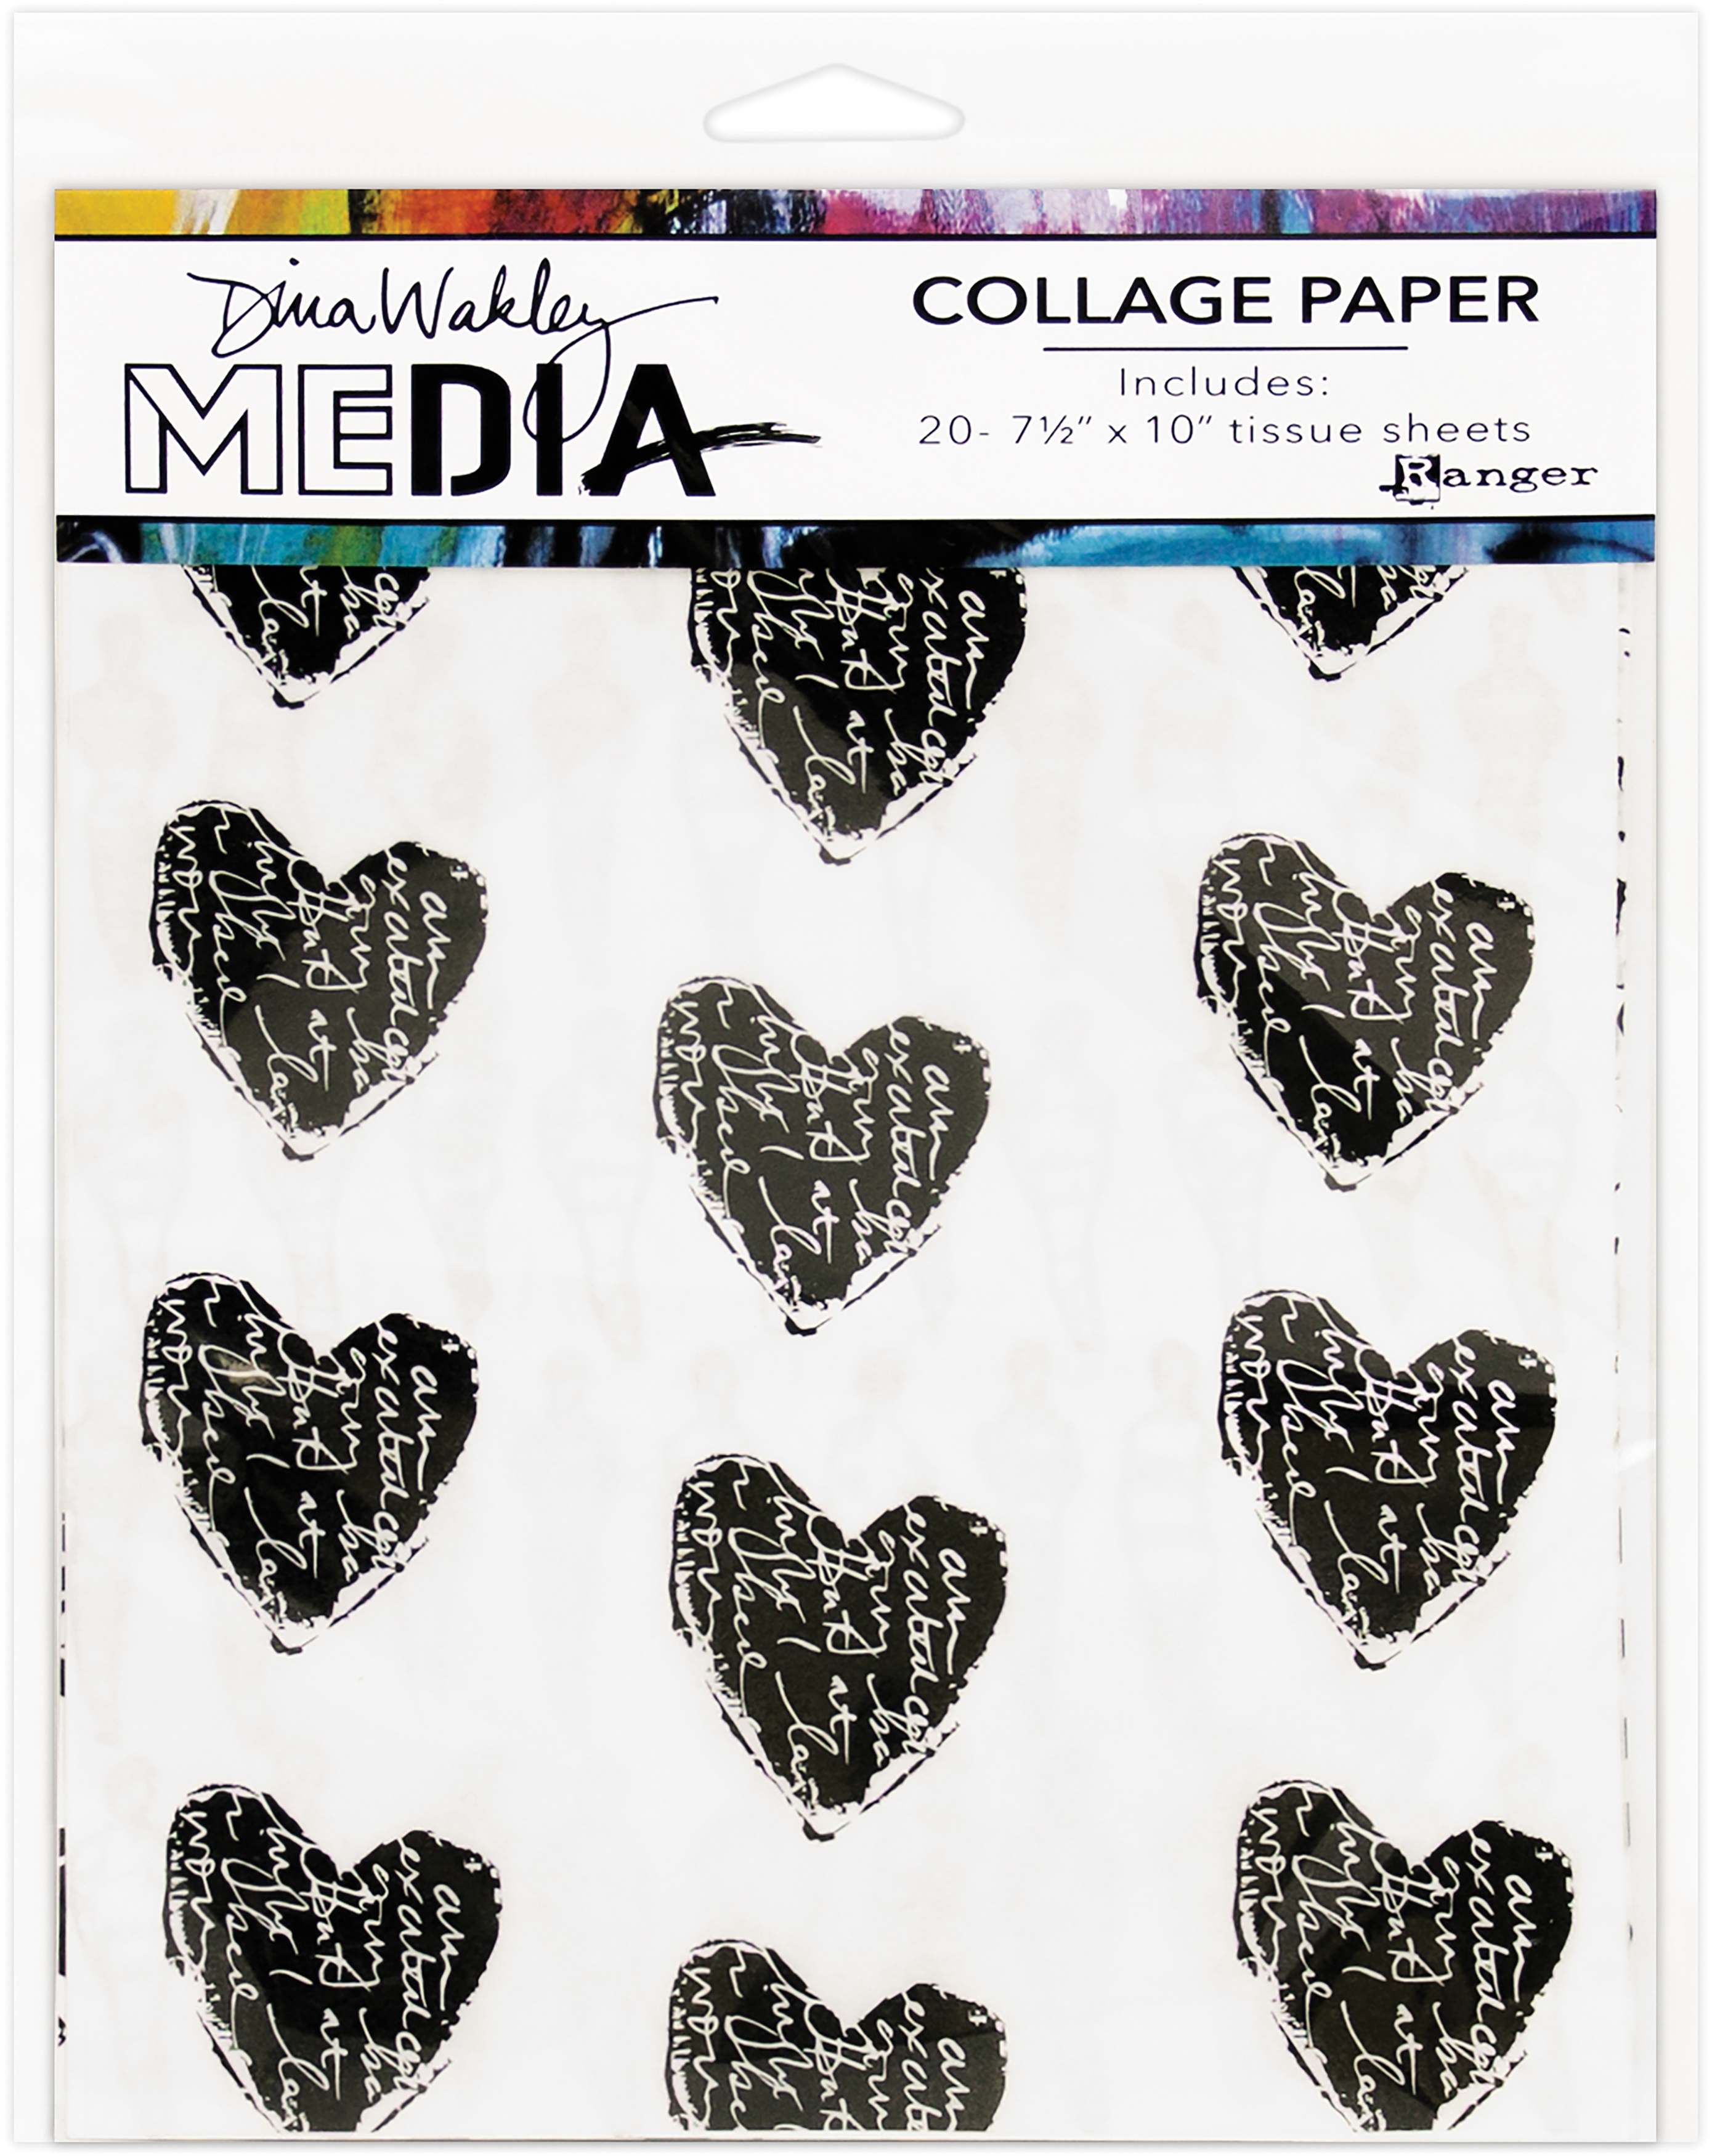 Dina Wakley Media Collage Tissue Paper  7.5X10 20/Pkg-10 Printed/10 Plain